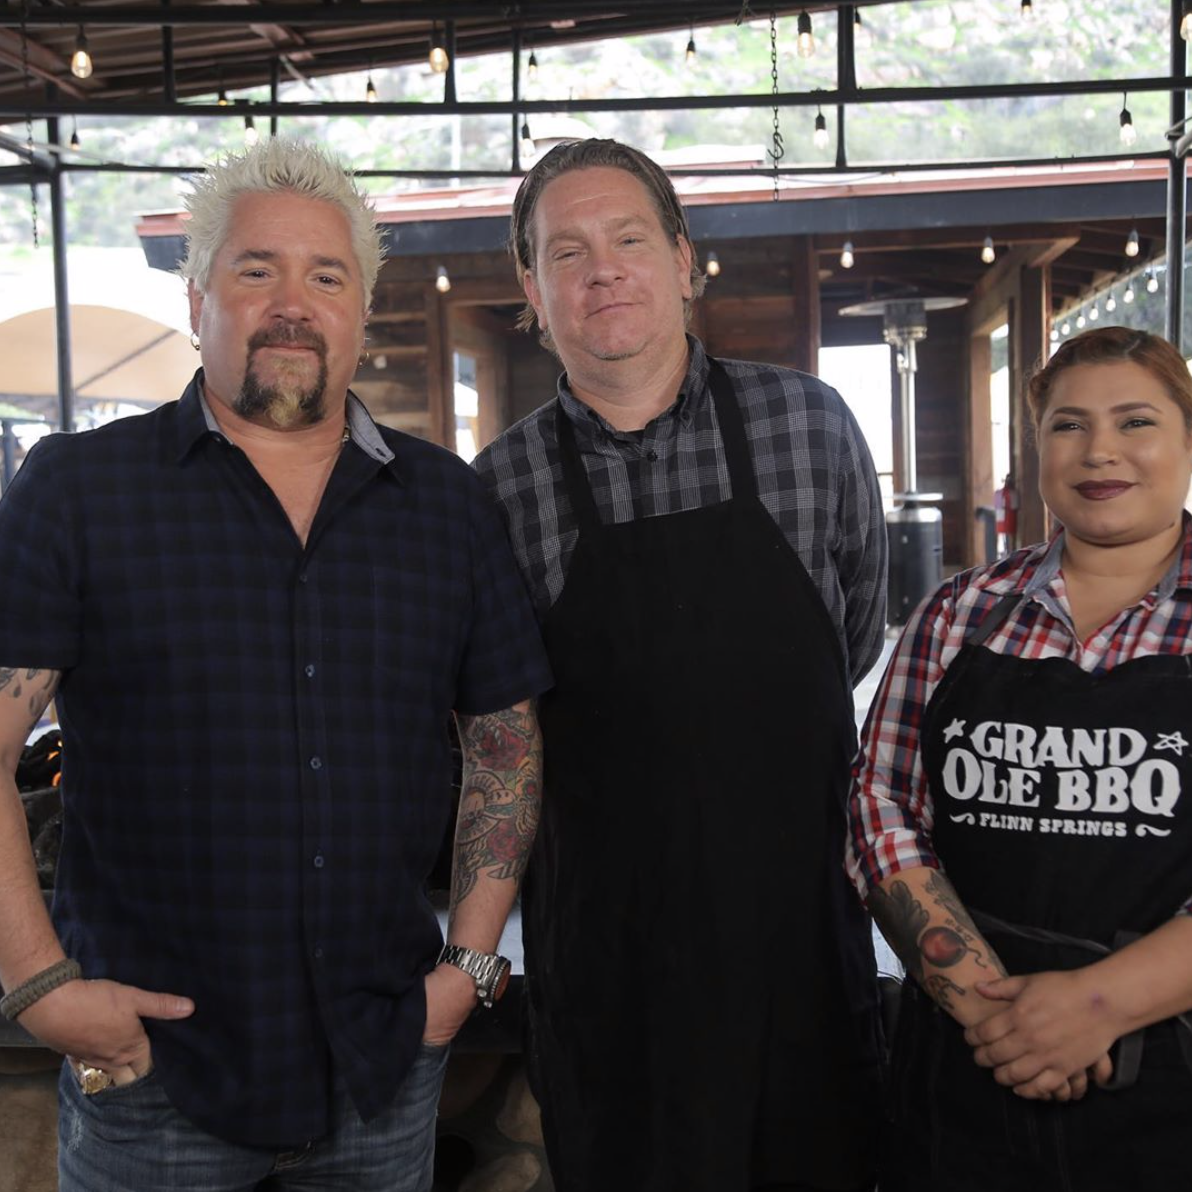 SangoVille: The Guy Fieri Road Map Of San go | All The Local ... on car drivers drive-ins dives, guy diners and dives, 13 gypsies jacksonville diners and dives, drivers diners and dives, diners and dives locations in hawaii,